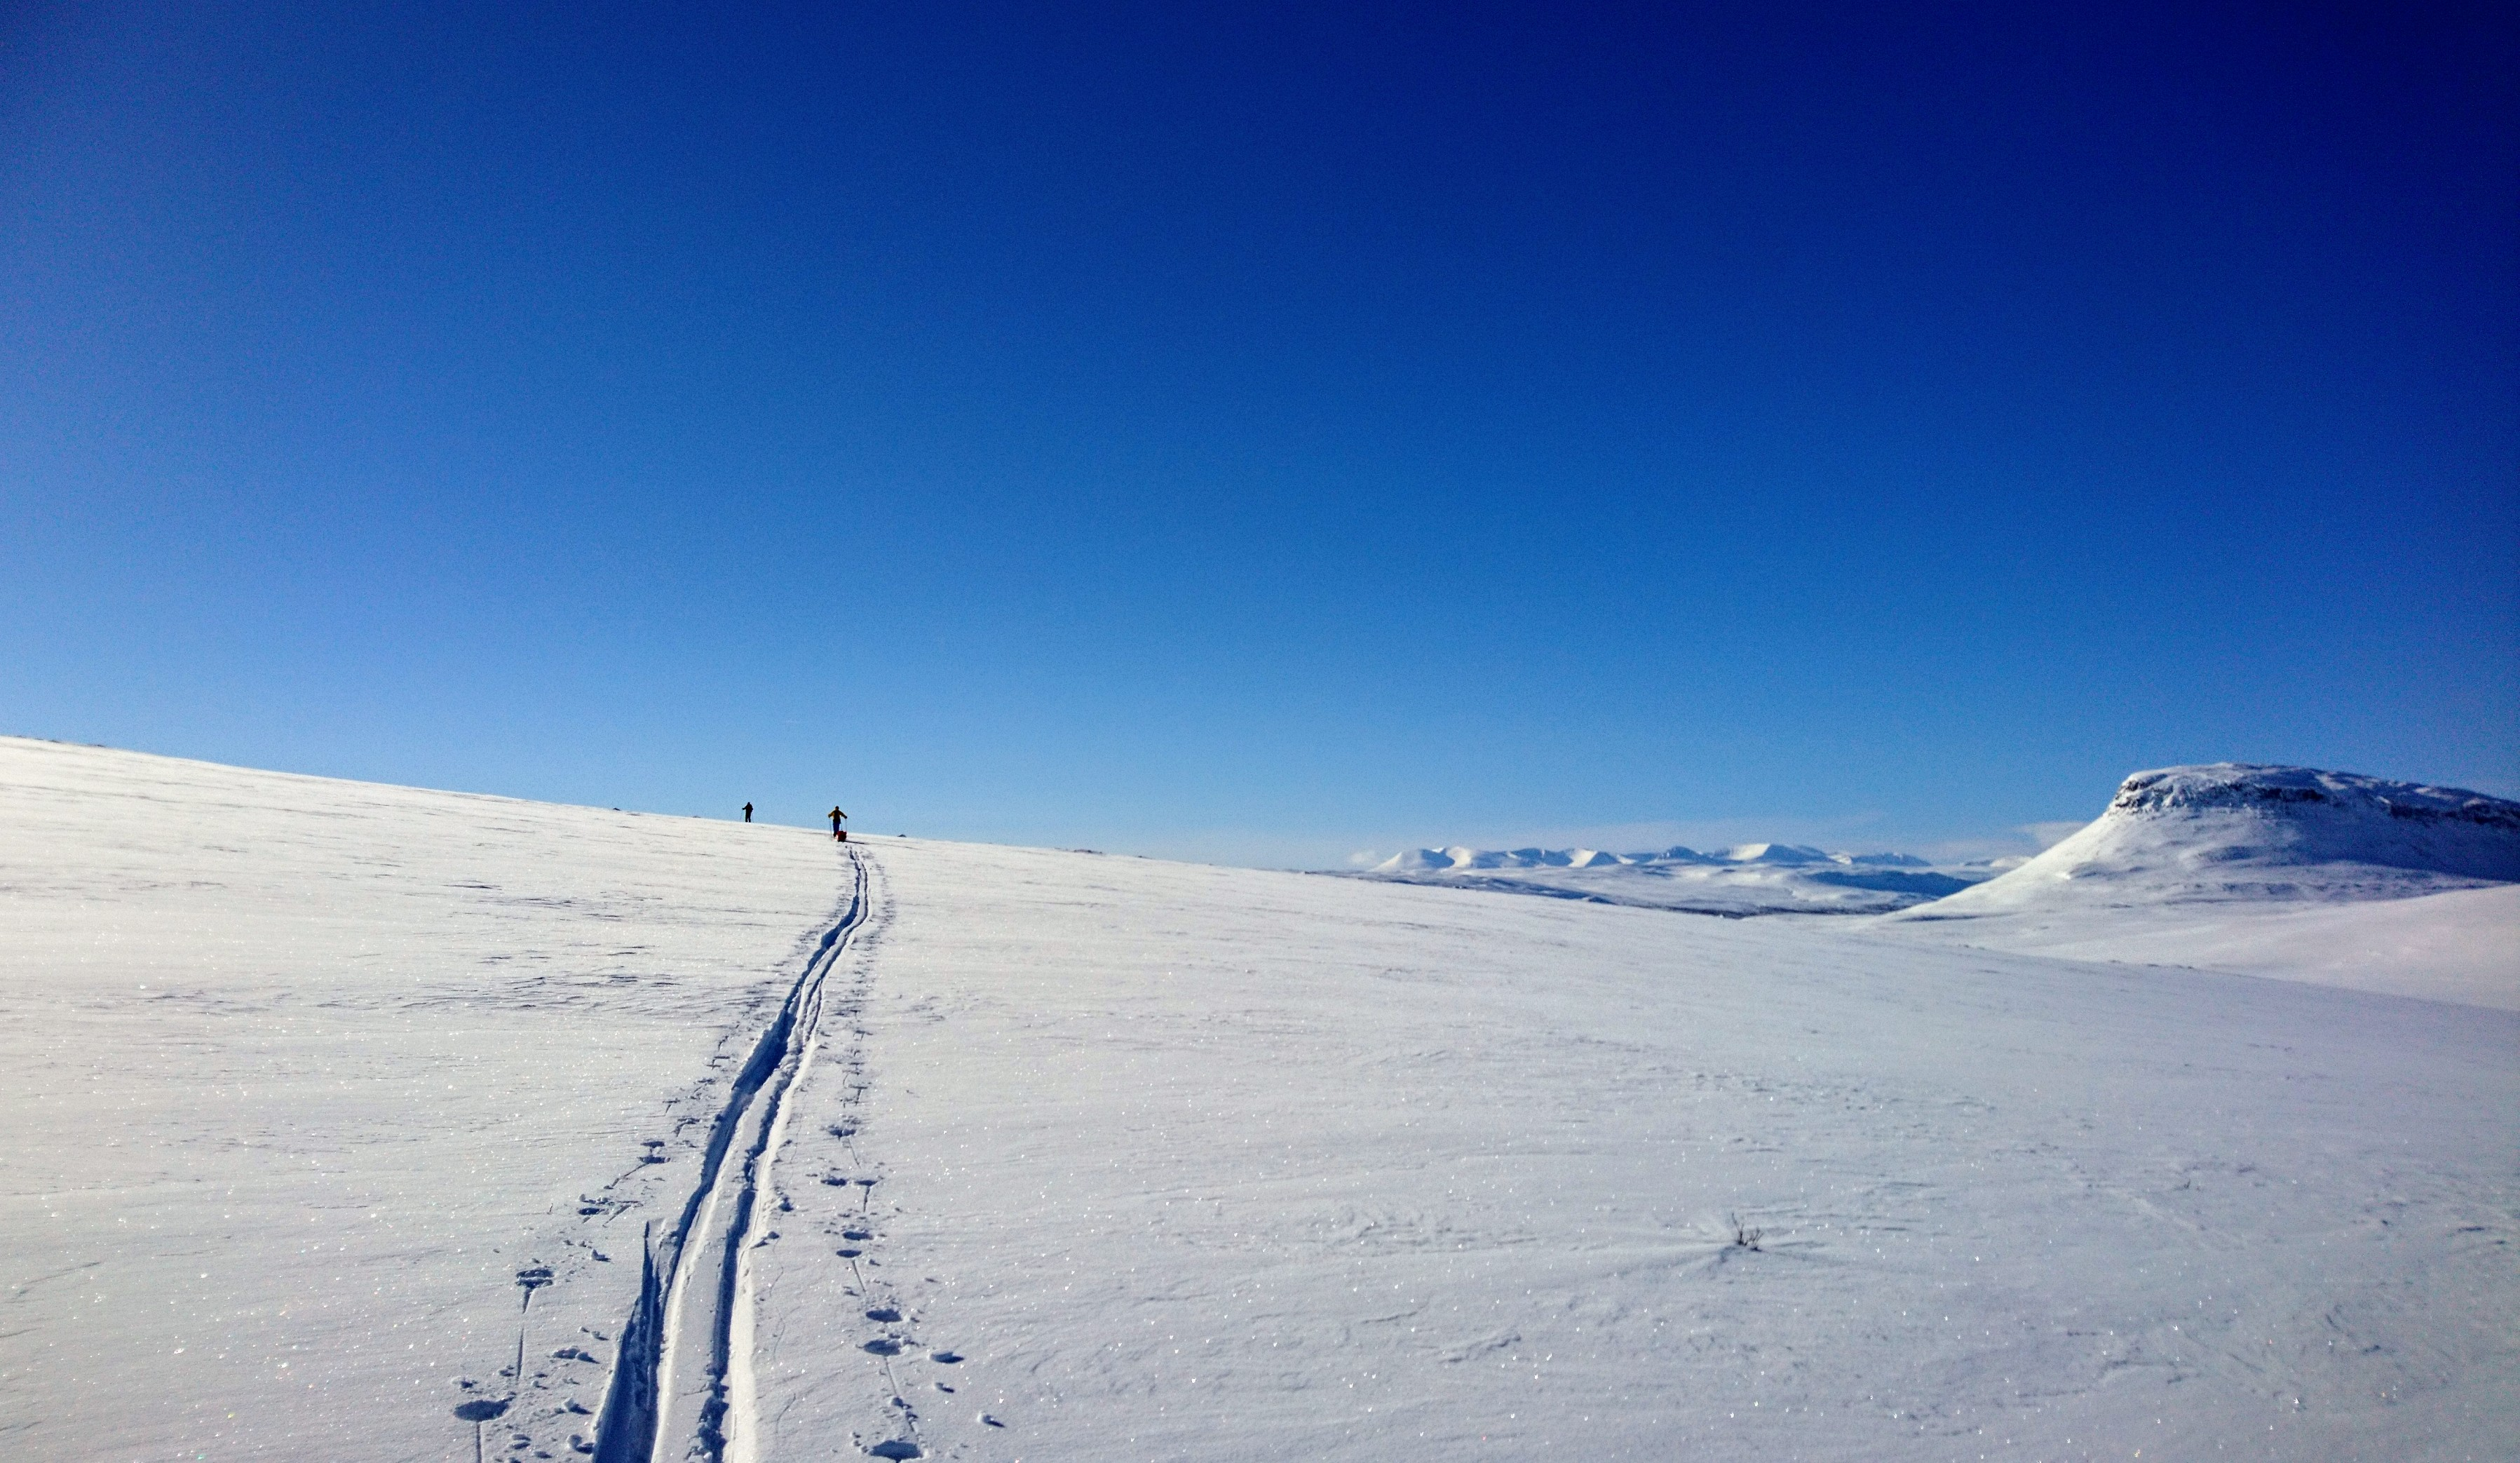 Skiing in Kilpisjarvi